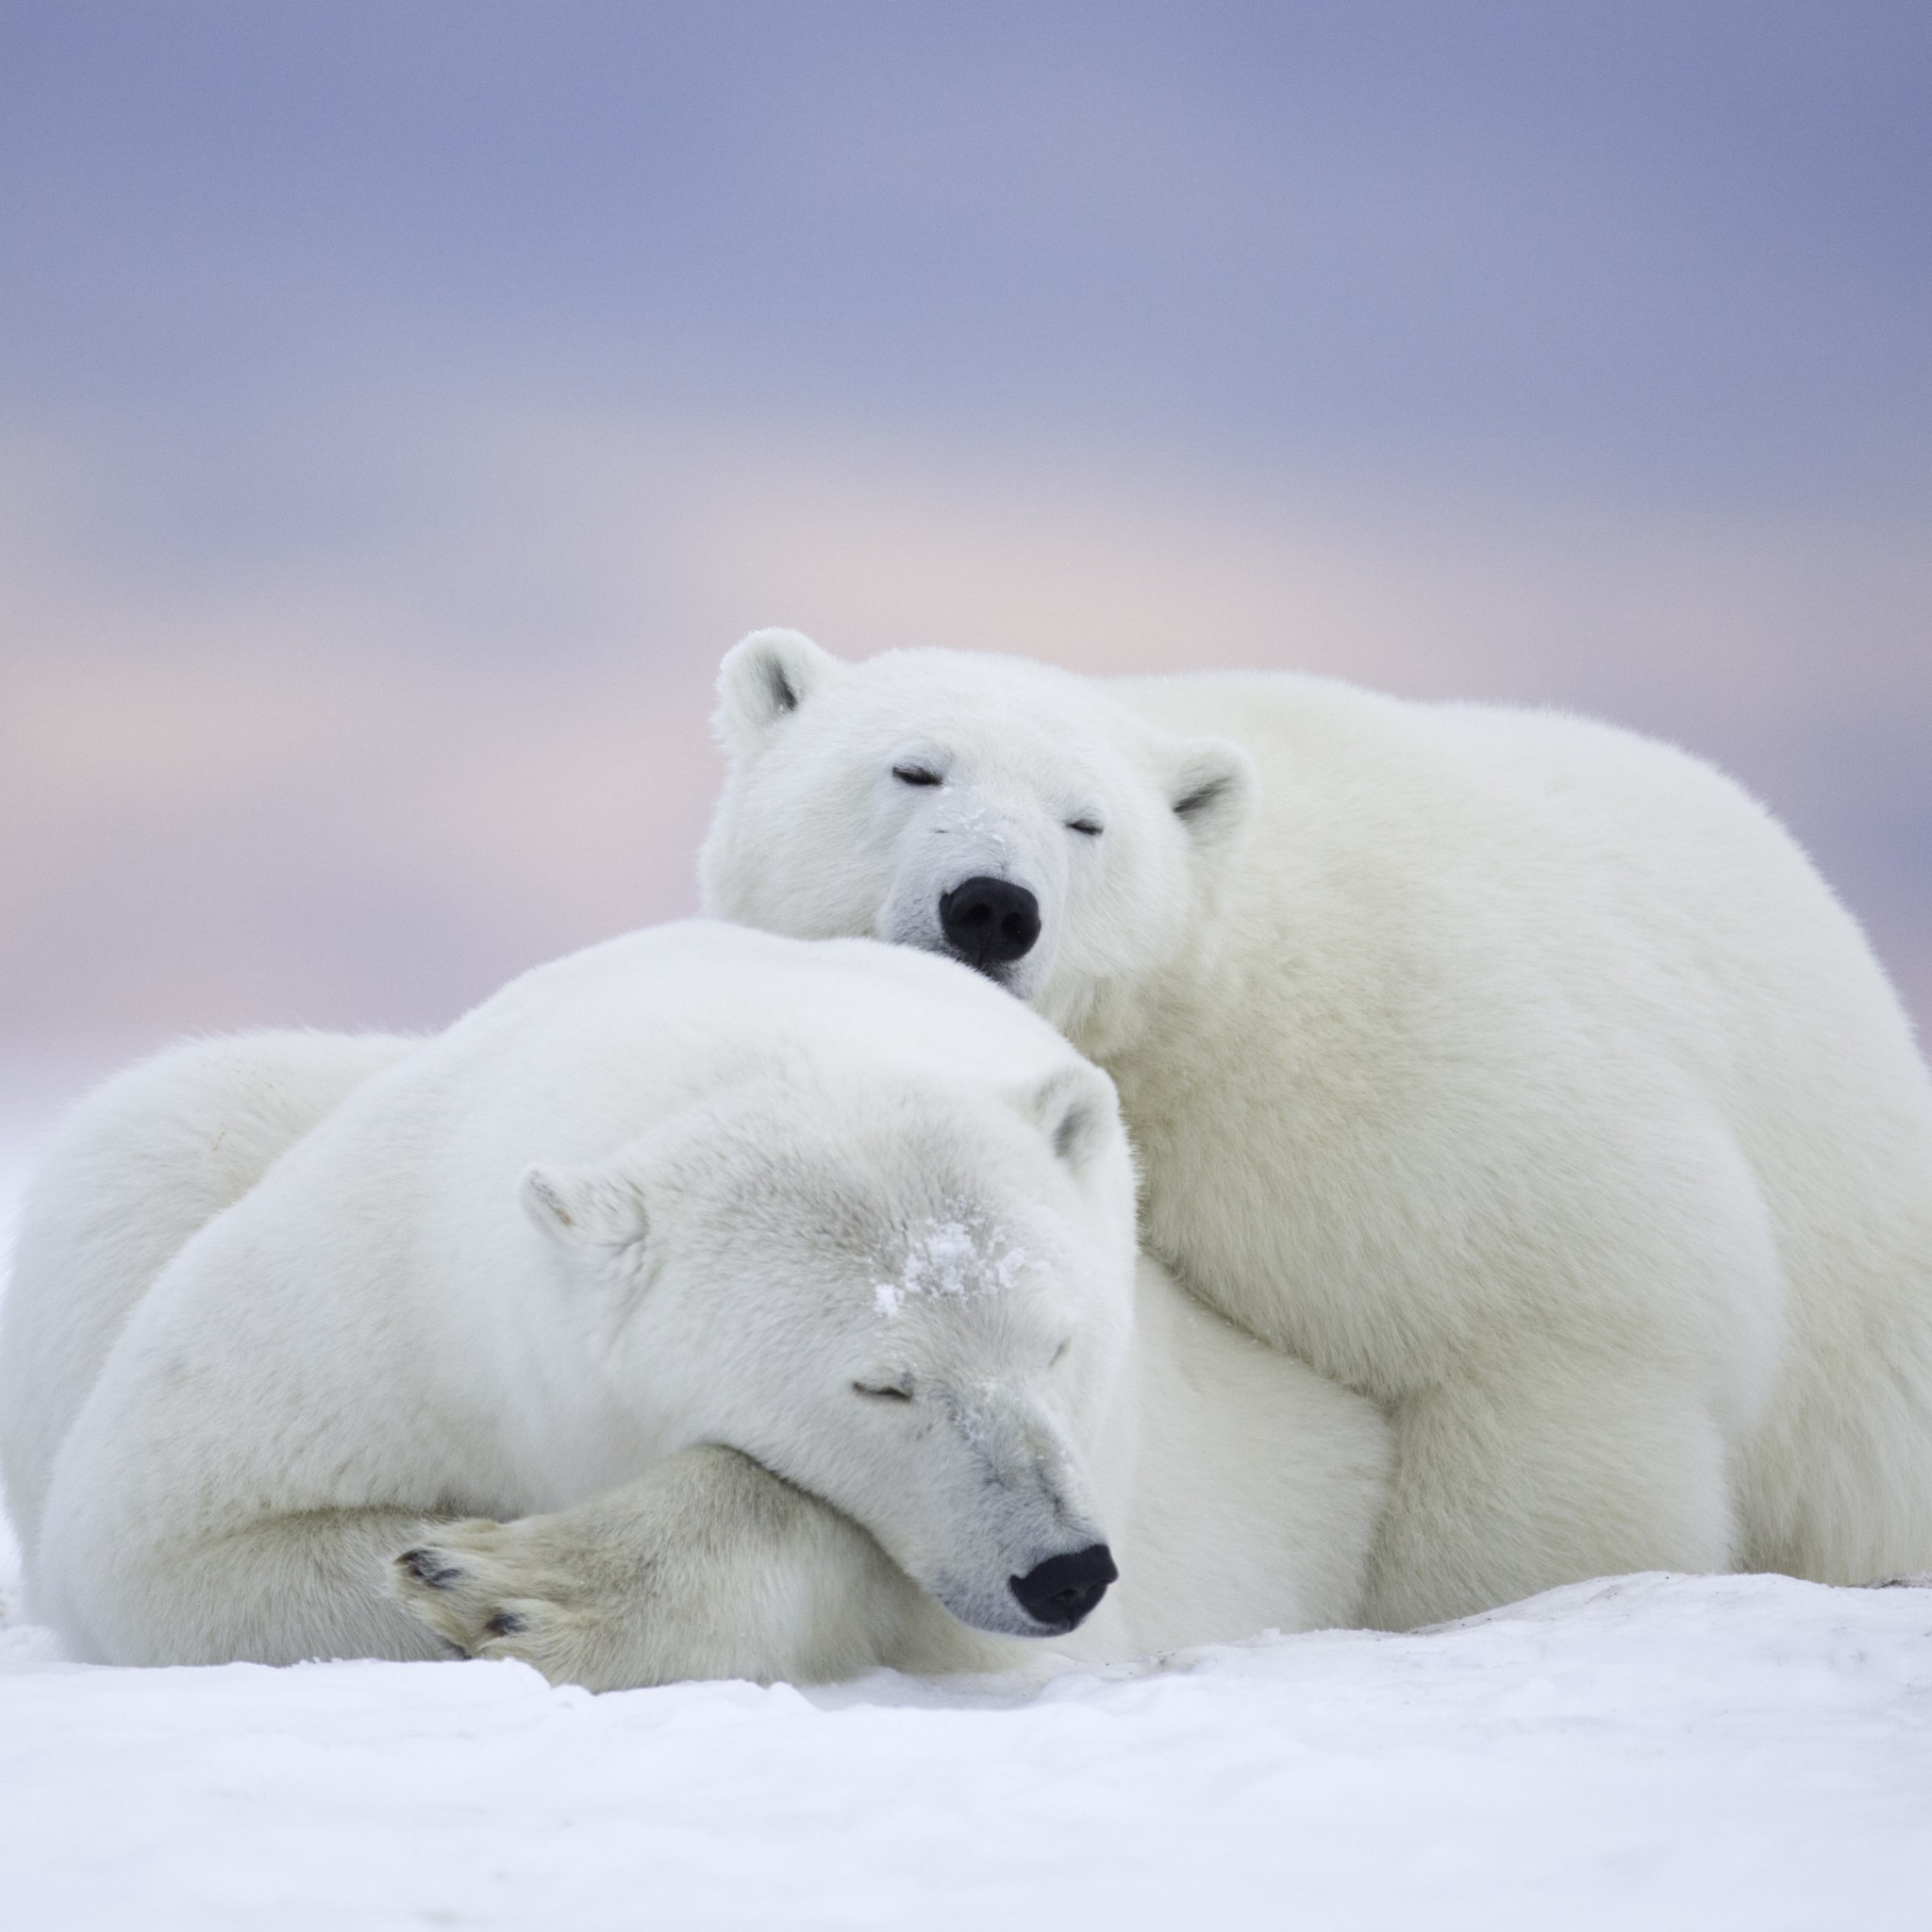 Wild polar bears in Alaska wallpaper 2048x2048